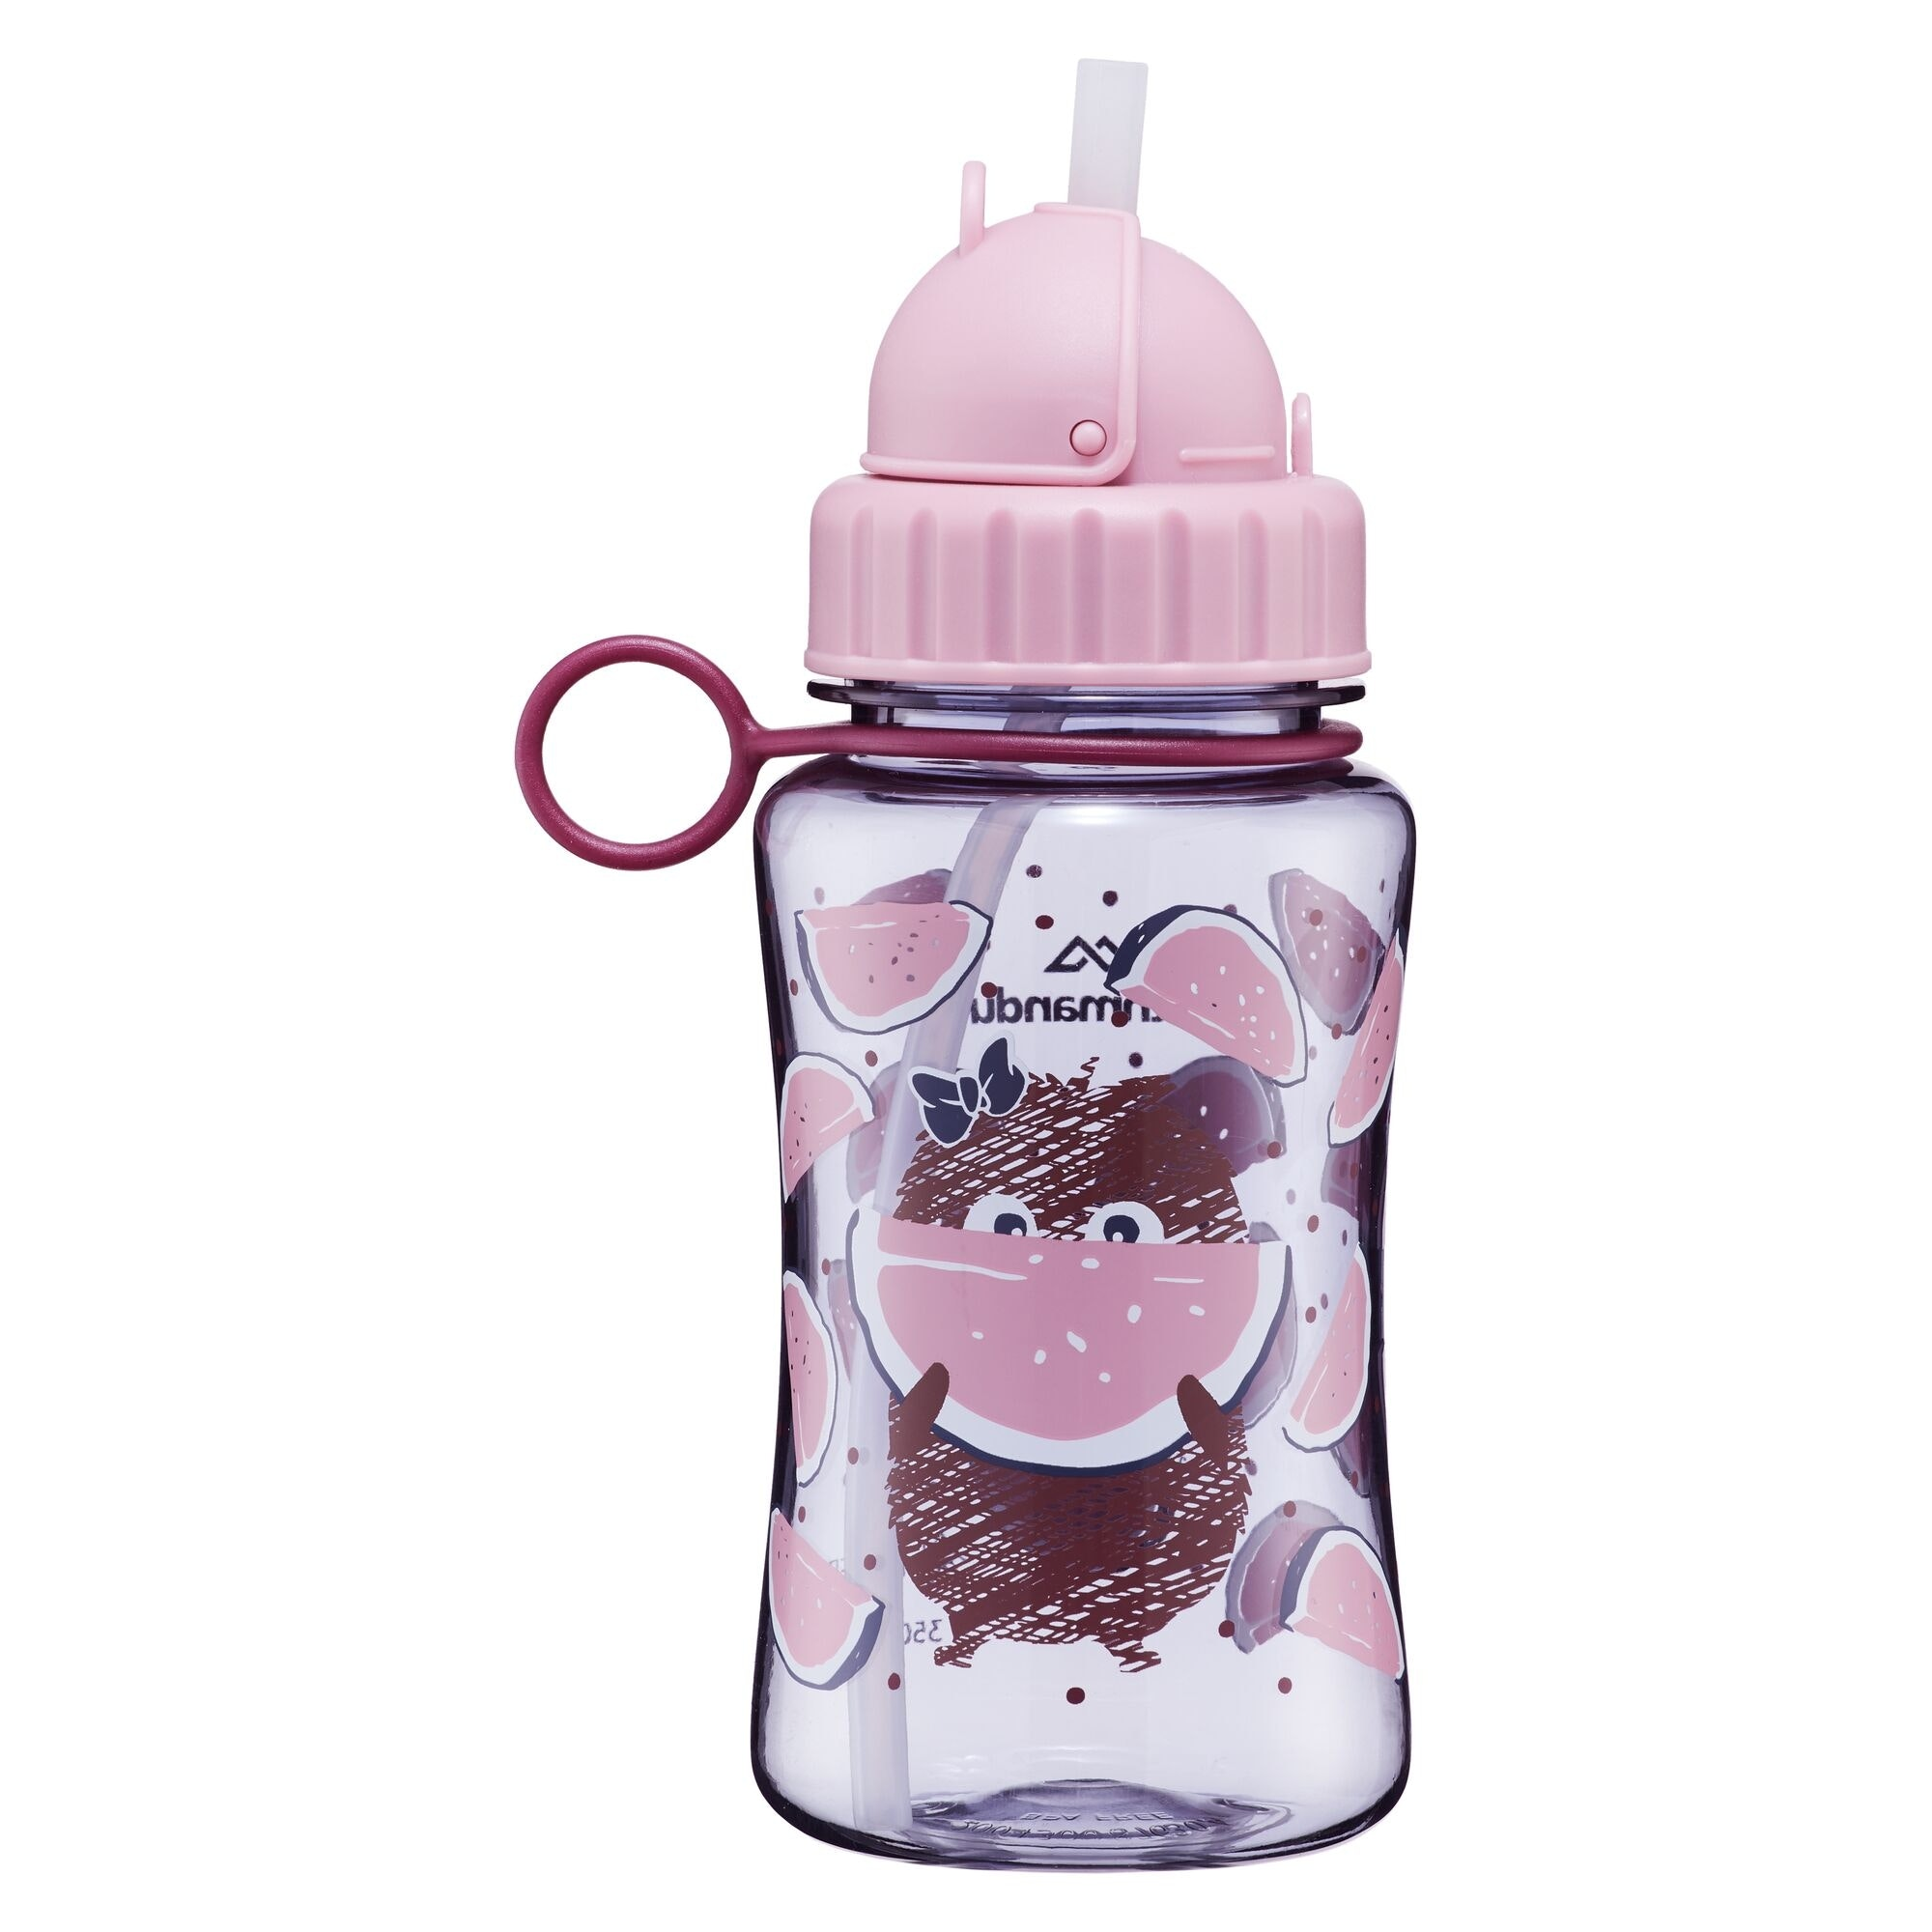 NEW-Kathmandu-Kids-039-Reusable-Plastic-Water-Drink-Bottle-350ml-BPA-Free